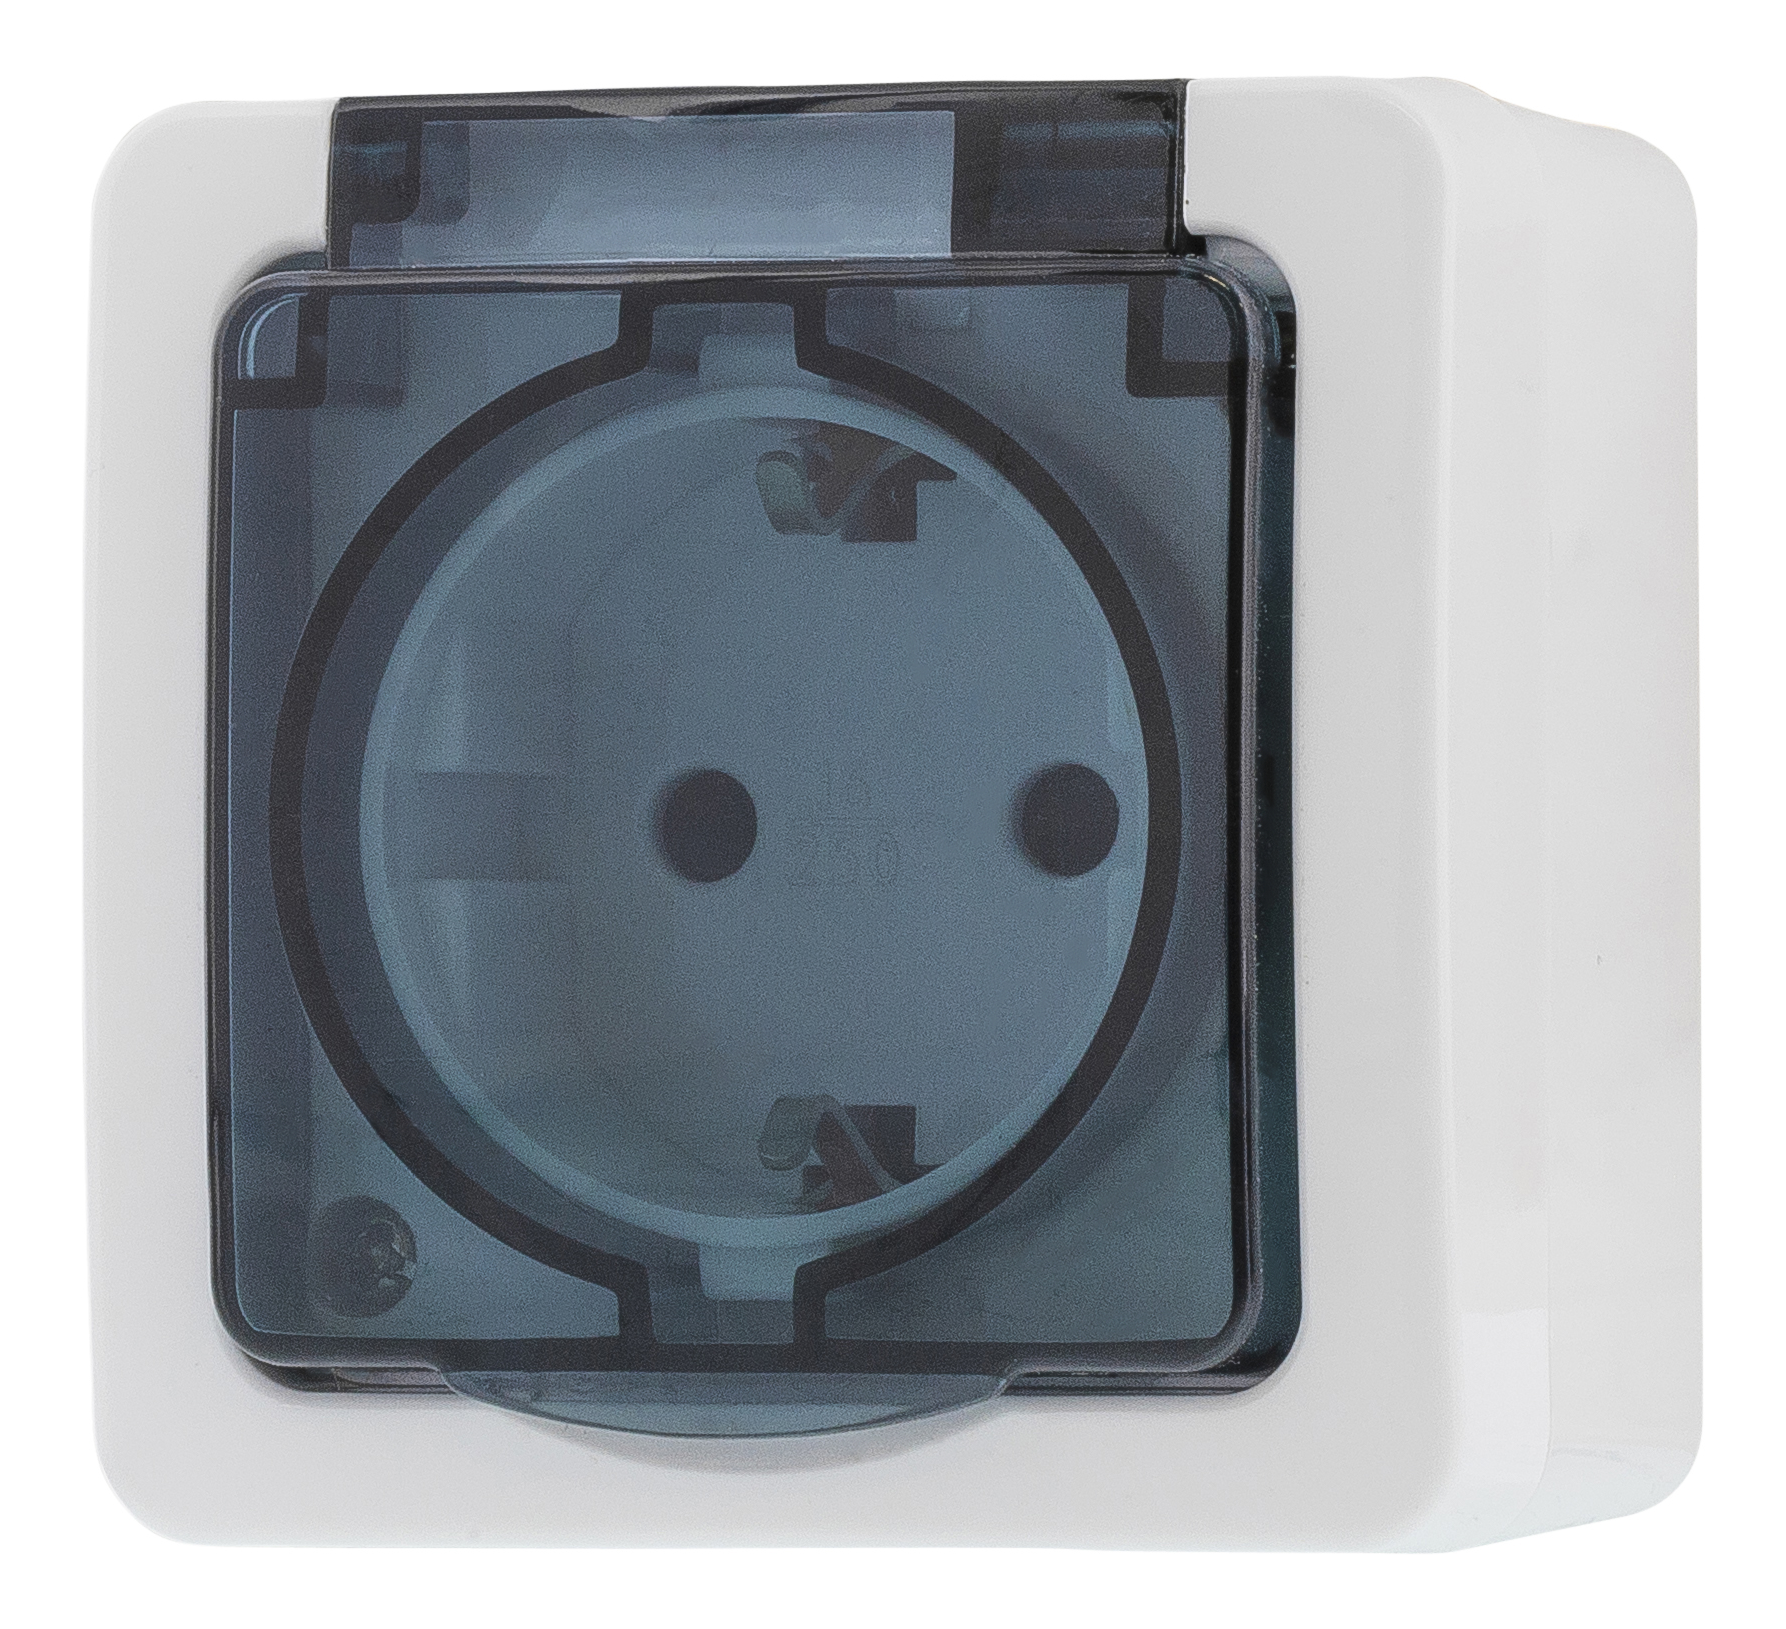 Epzi 1-way outlet with hinged lid for surface mounting, IP54, white H2-A51GM (Kan sendes i brev)